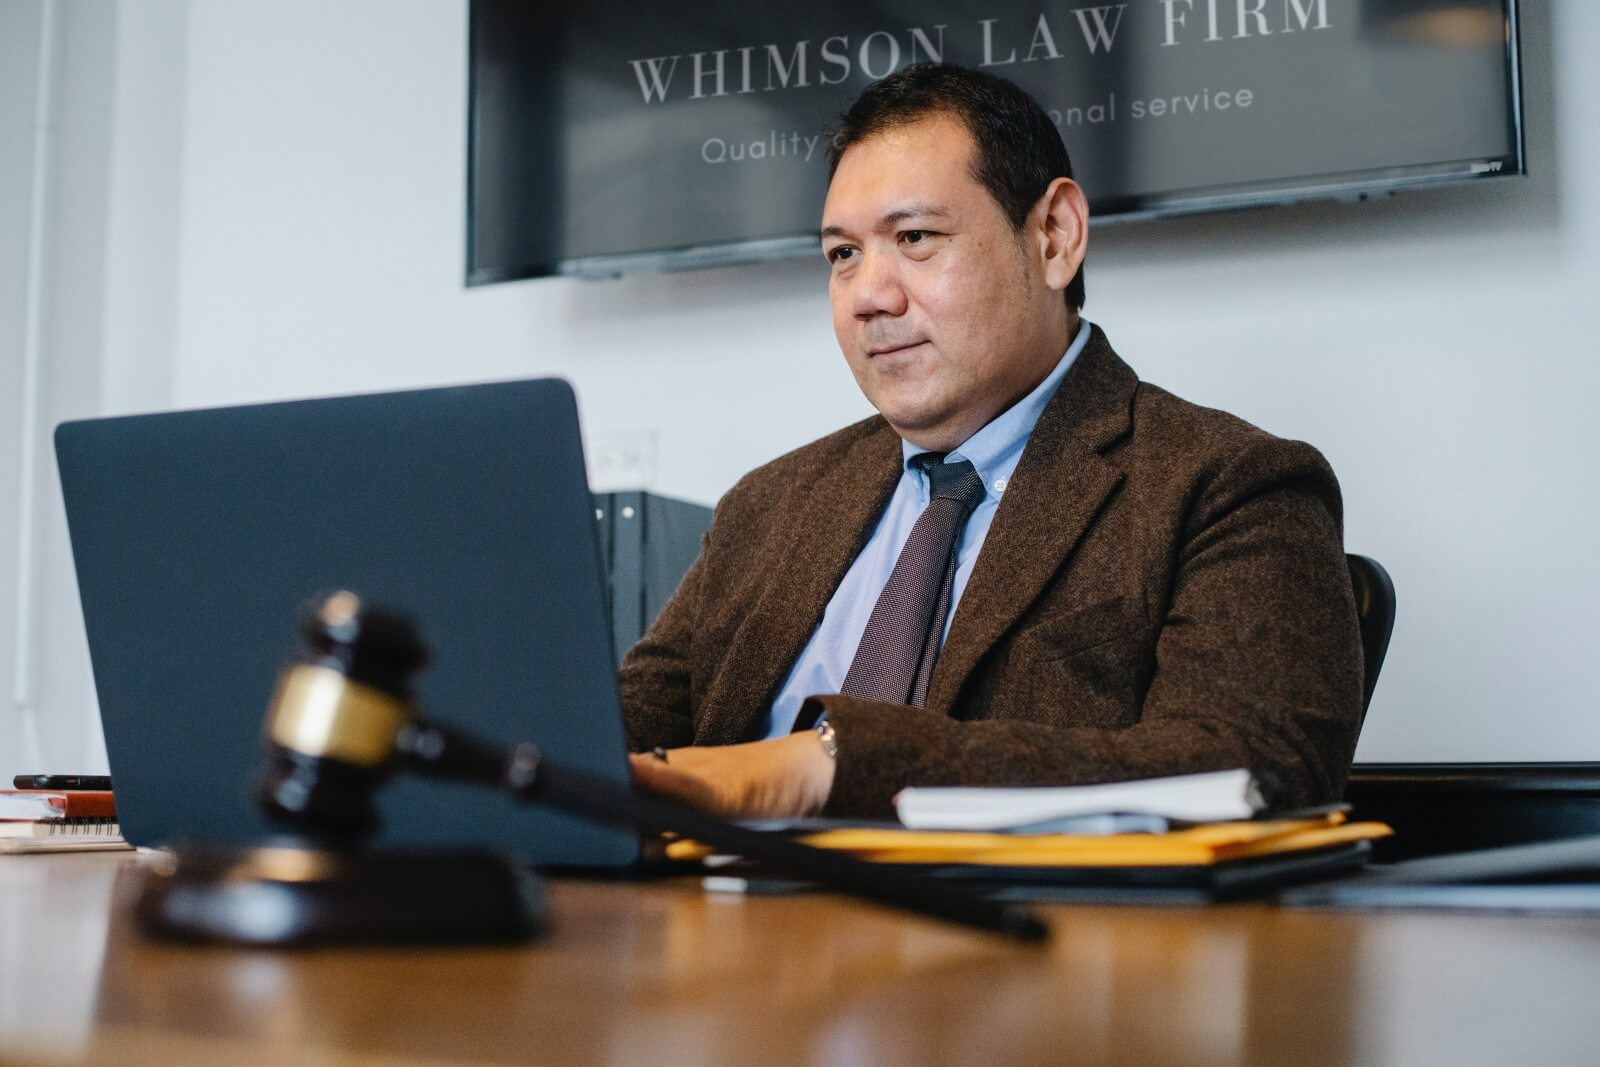 Male AAPI lawyer reviews his personal injury law firm's website